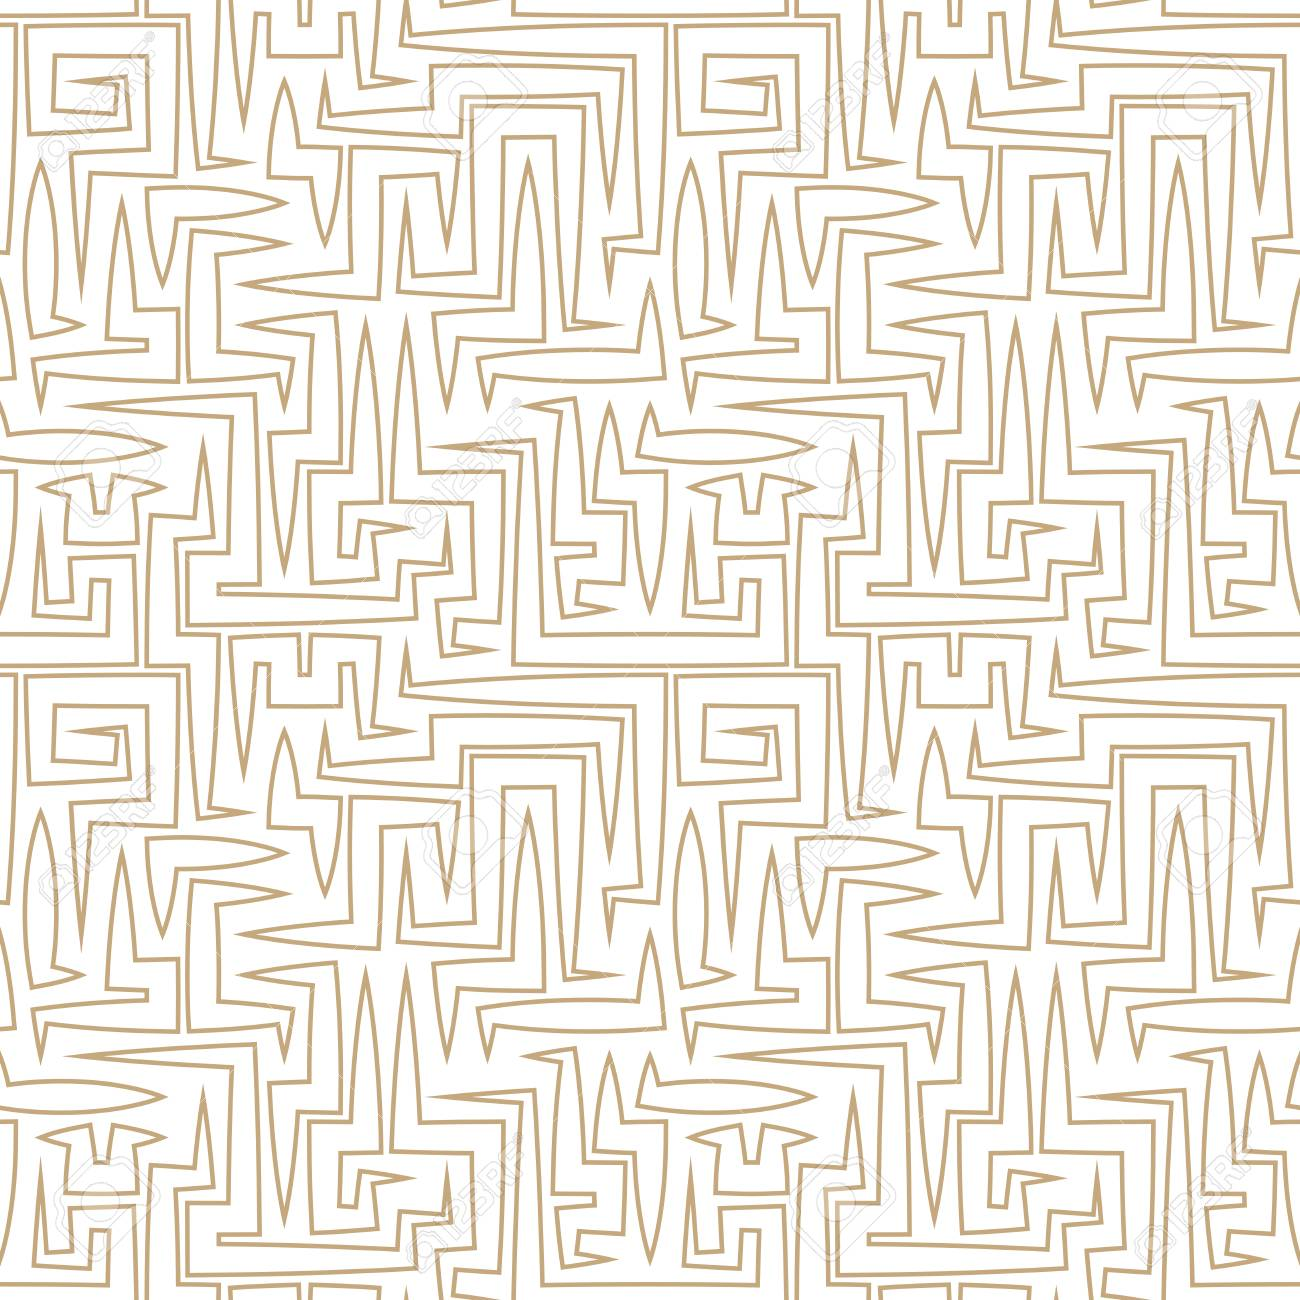 abstract geometric line graphic maze pattern background - 75307085